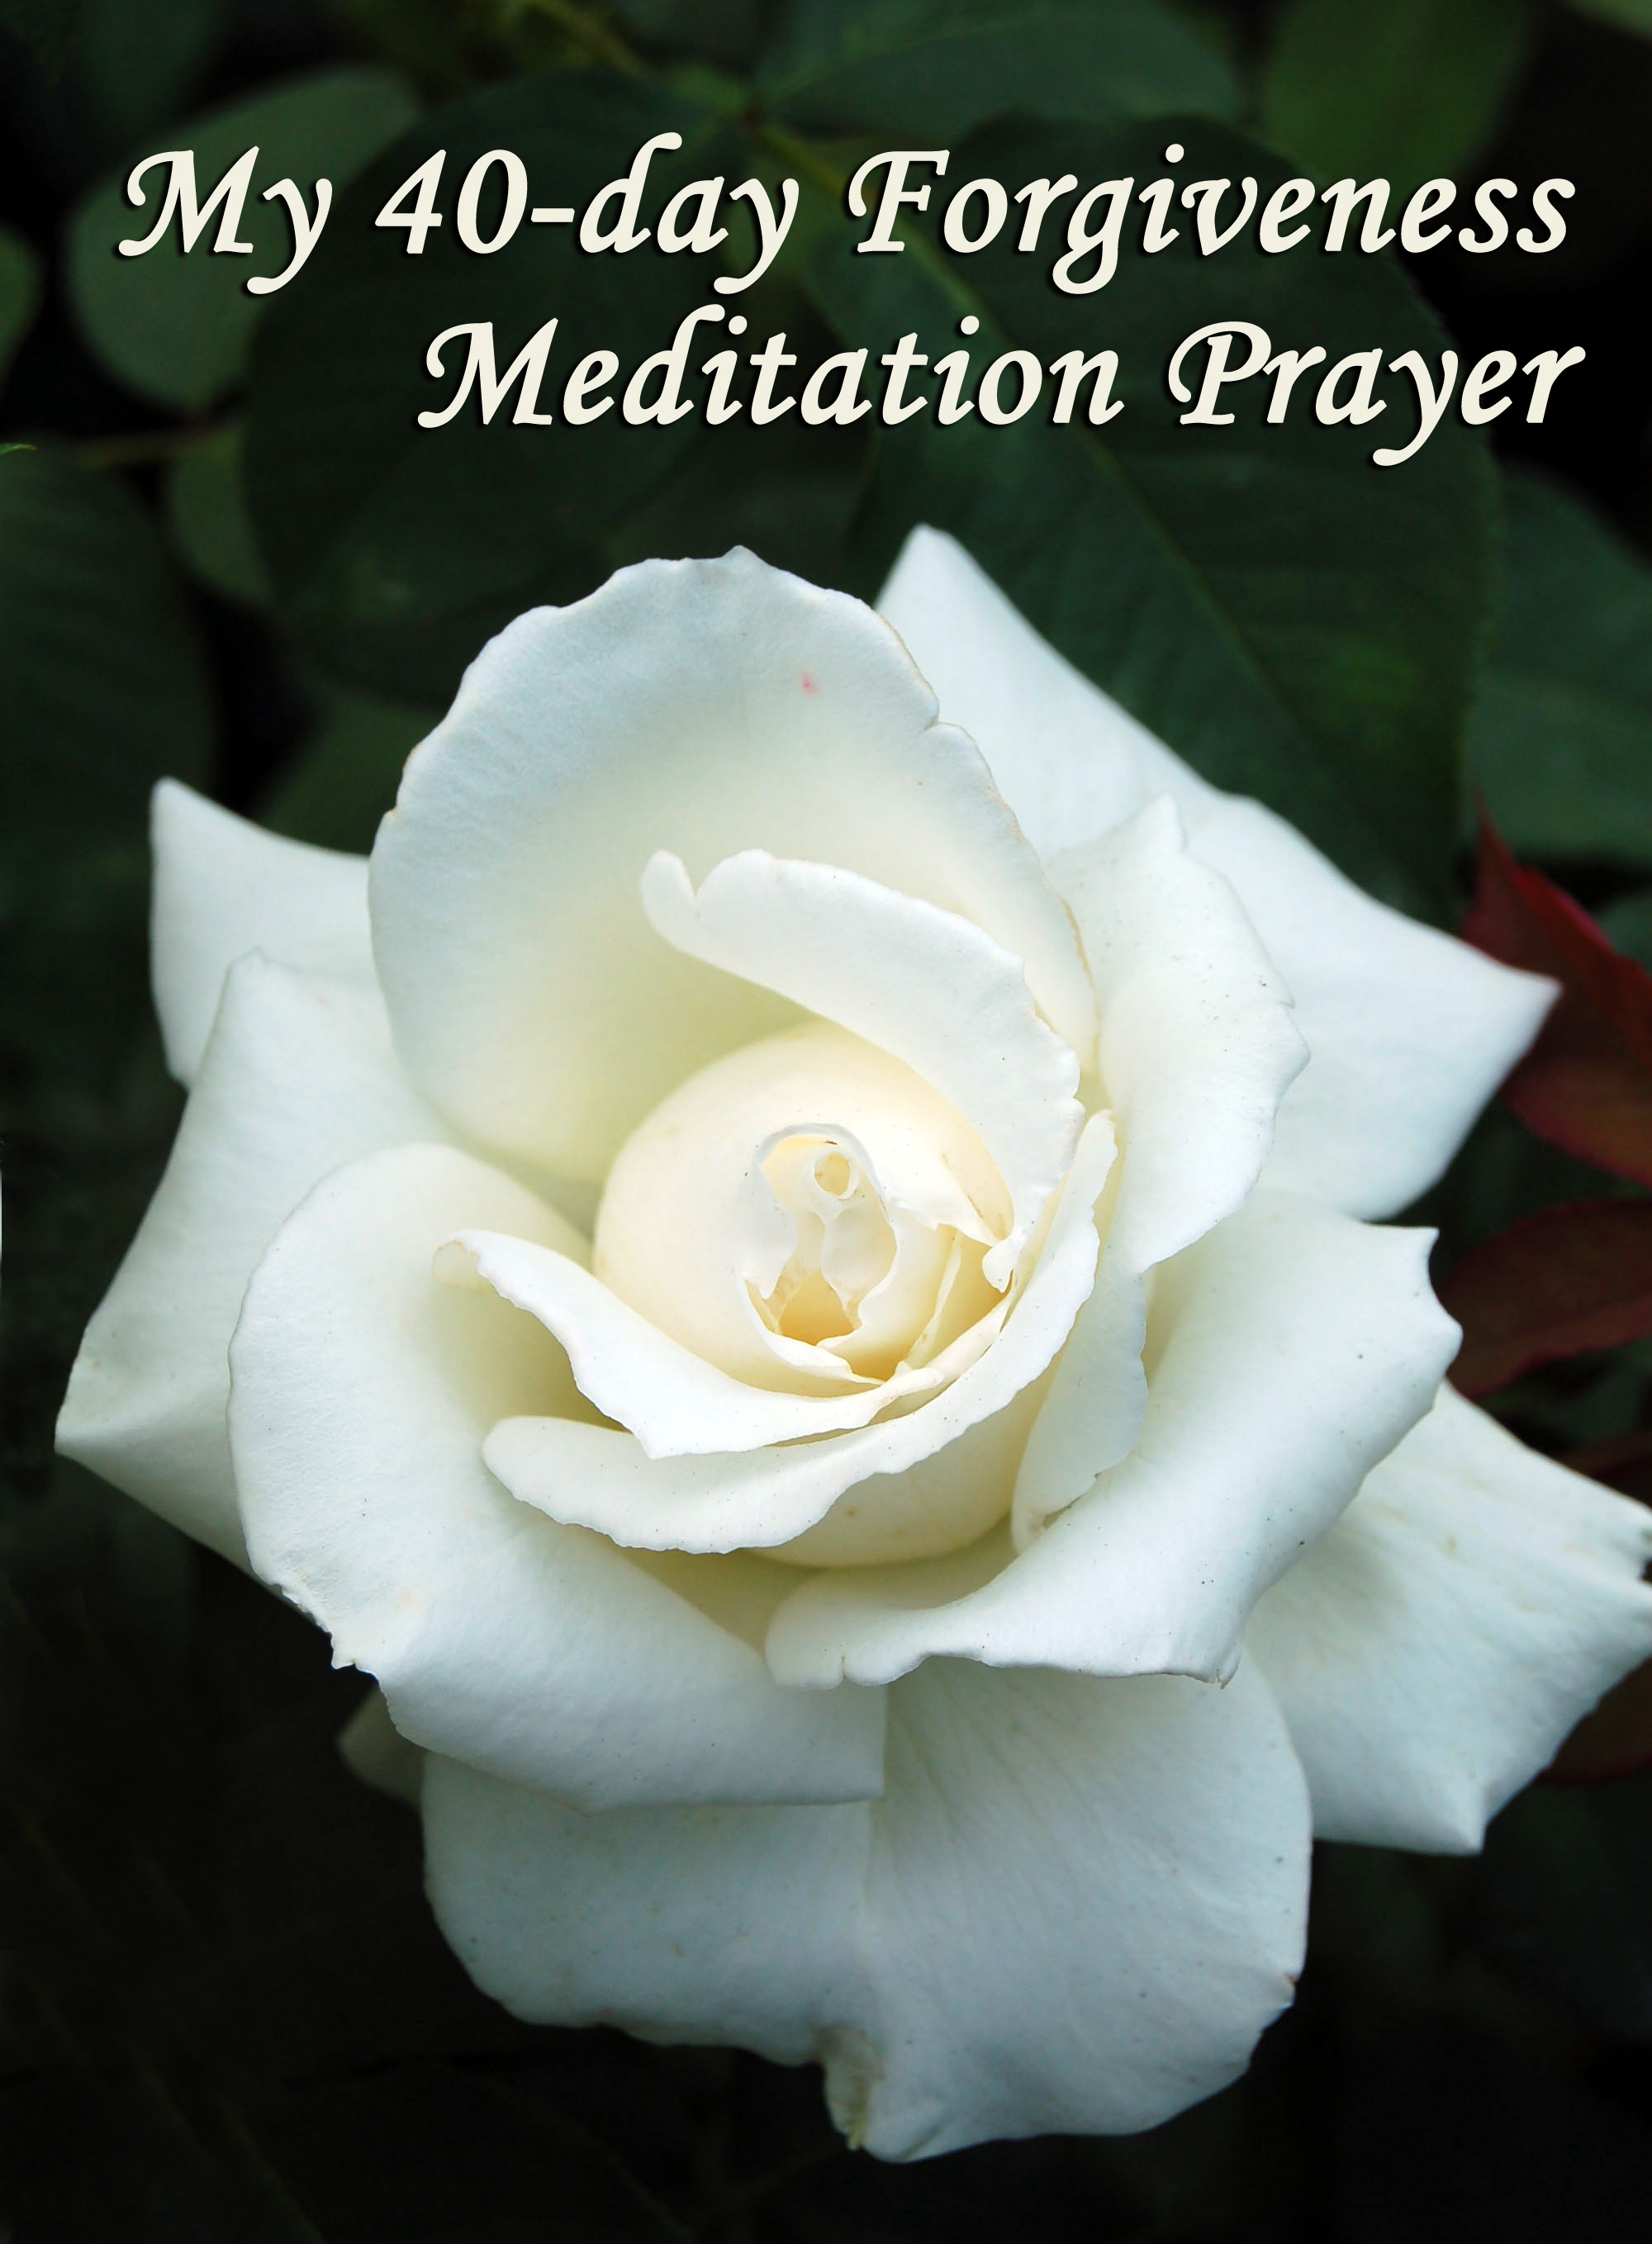 40-day Forgiveness Meditation Prayer